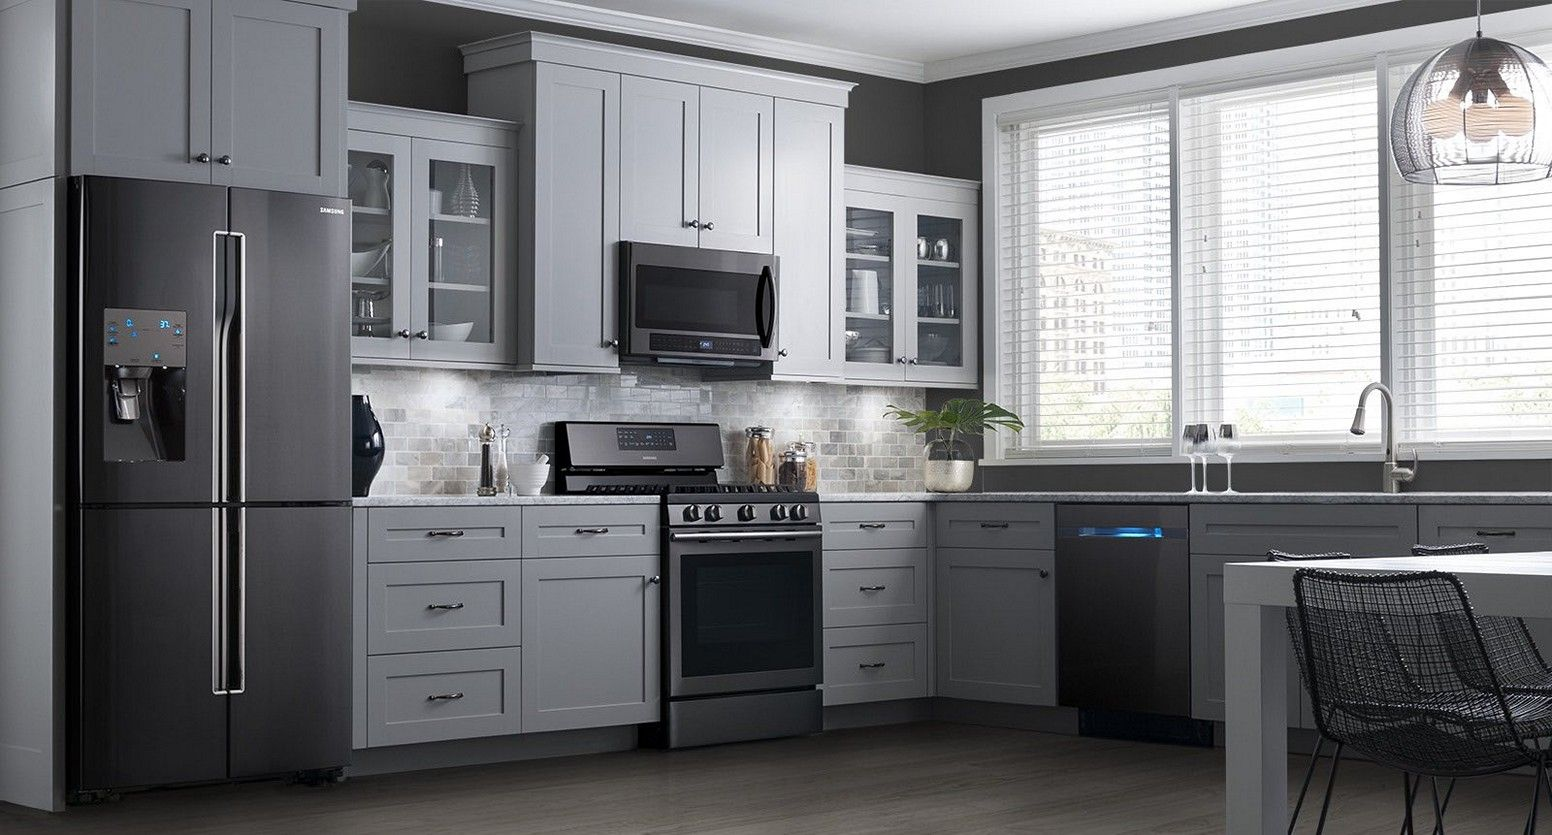 Stylish Best Off White Kitchen Cabinets With Granite Countertops Beauteous Kitchen Countertop Design Tool Design Ideas